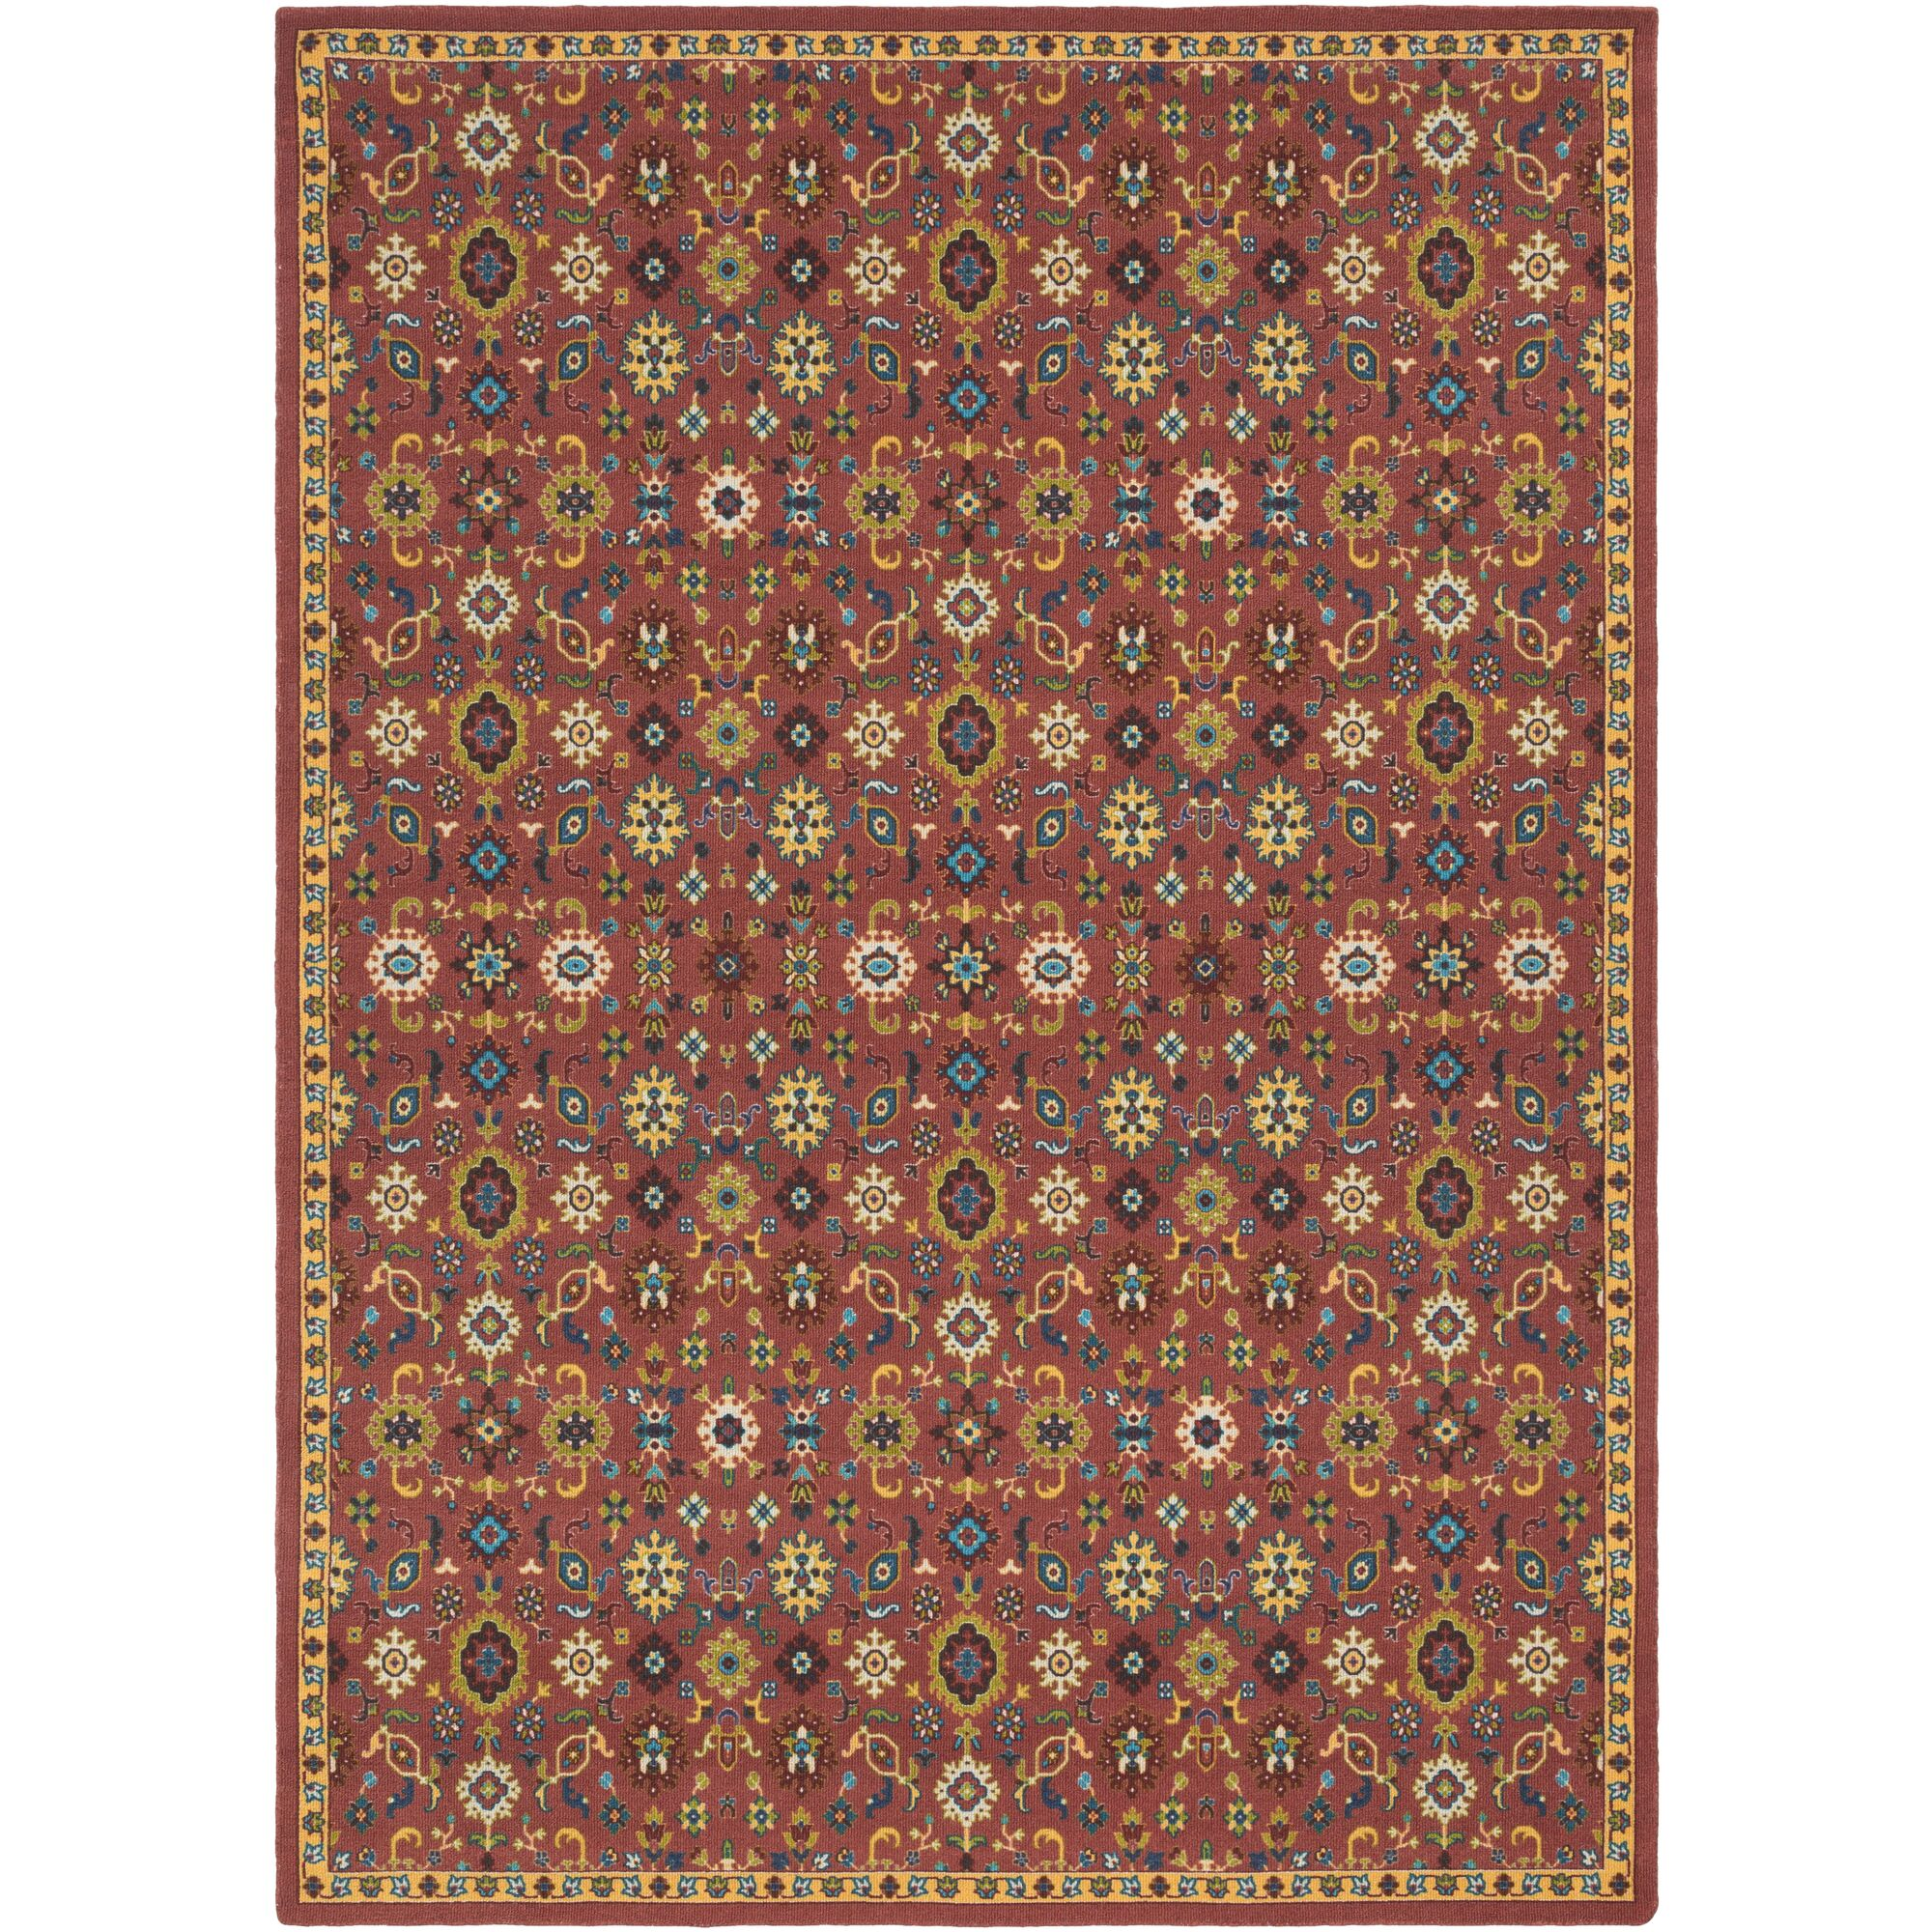 Emmie Red/Yellow Area Rug Rug Size: Rectangle 8' x 11'